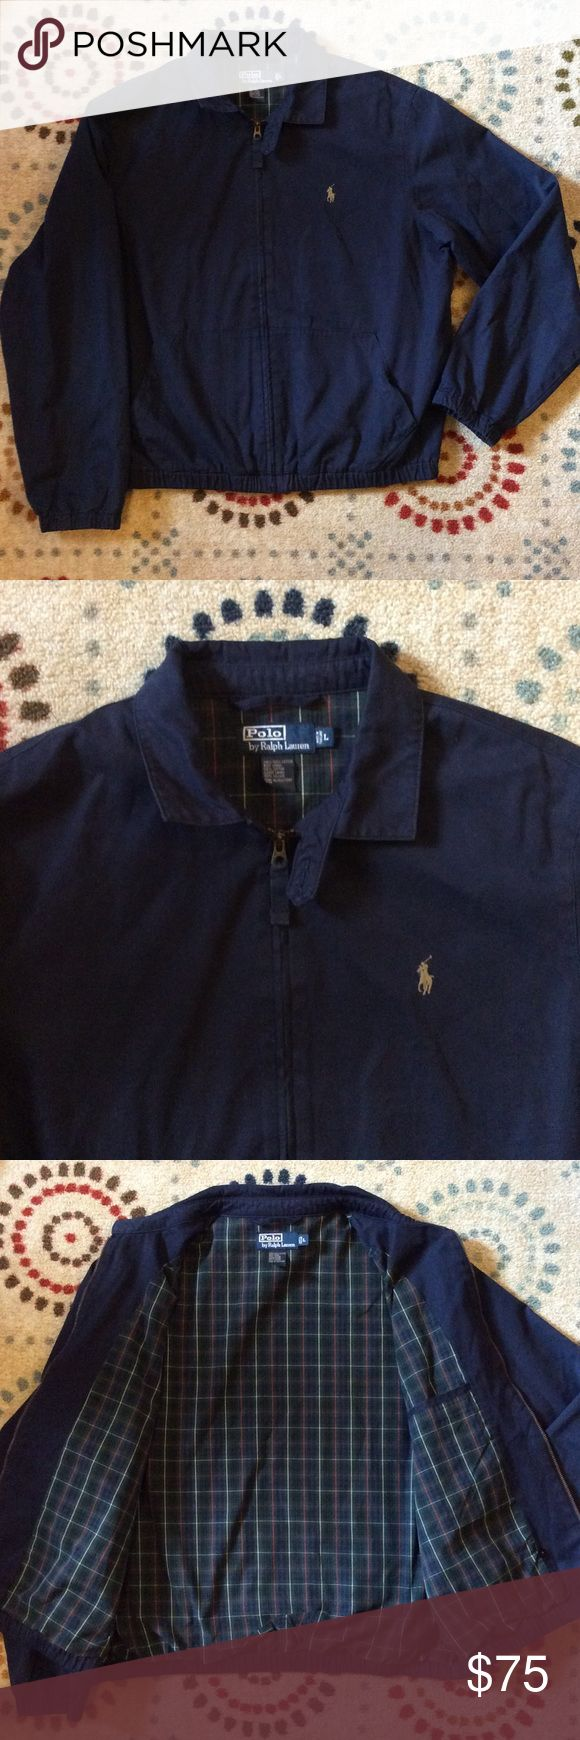 Men's Ralph Lauren Polo Jacket - Navy Blue Men's Ralph Lauren Polo jacket with lining. This jacket is in great condition. Great for the upcoming season. Polo by Ralph Lauren Jackets & Coats Lightweight & Shirt Jackets